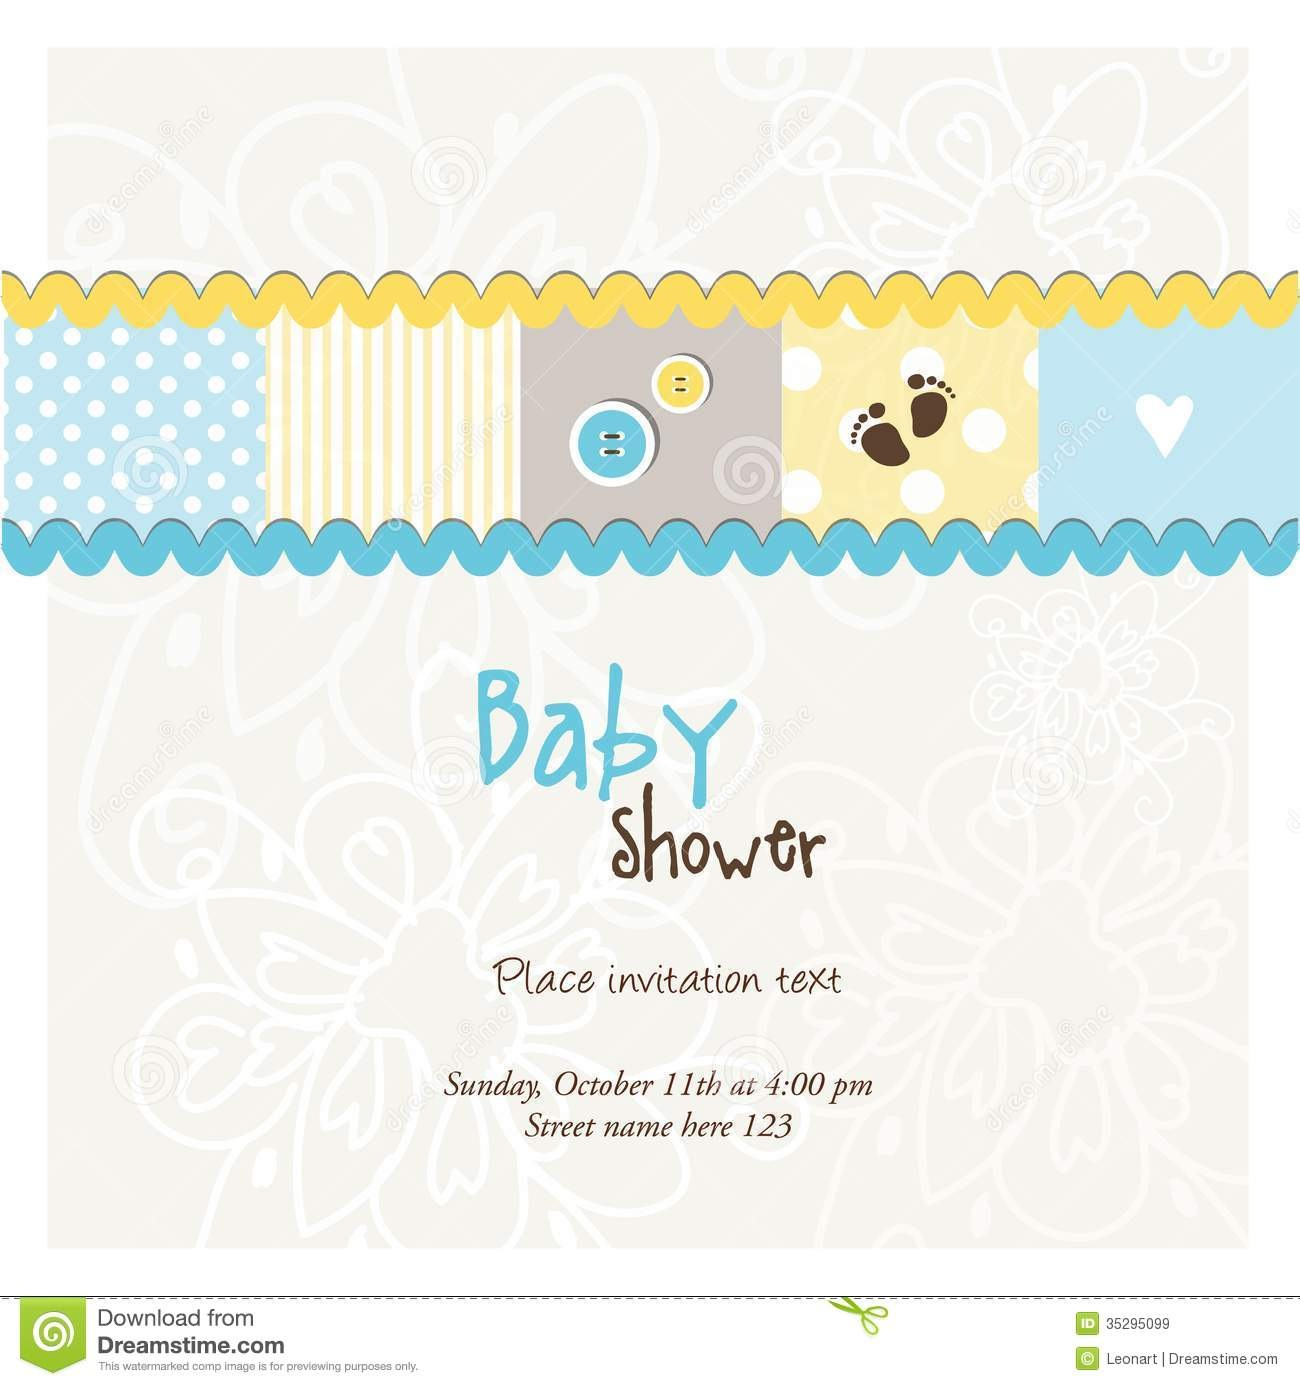 Full Size of Baby Shower:stylish Baby Shower Wishes Picture Inspirations Baby Shower Wishes Baby Shower Card Messages For A Unique Baby Shower Greeting Baby Shower Card Messages For A Unique Baby Shower Greeting Wedding